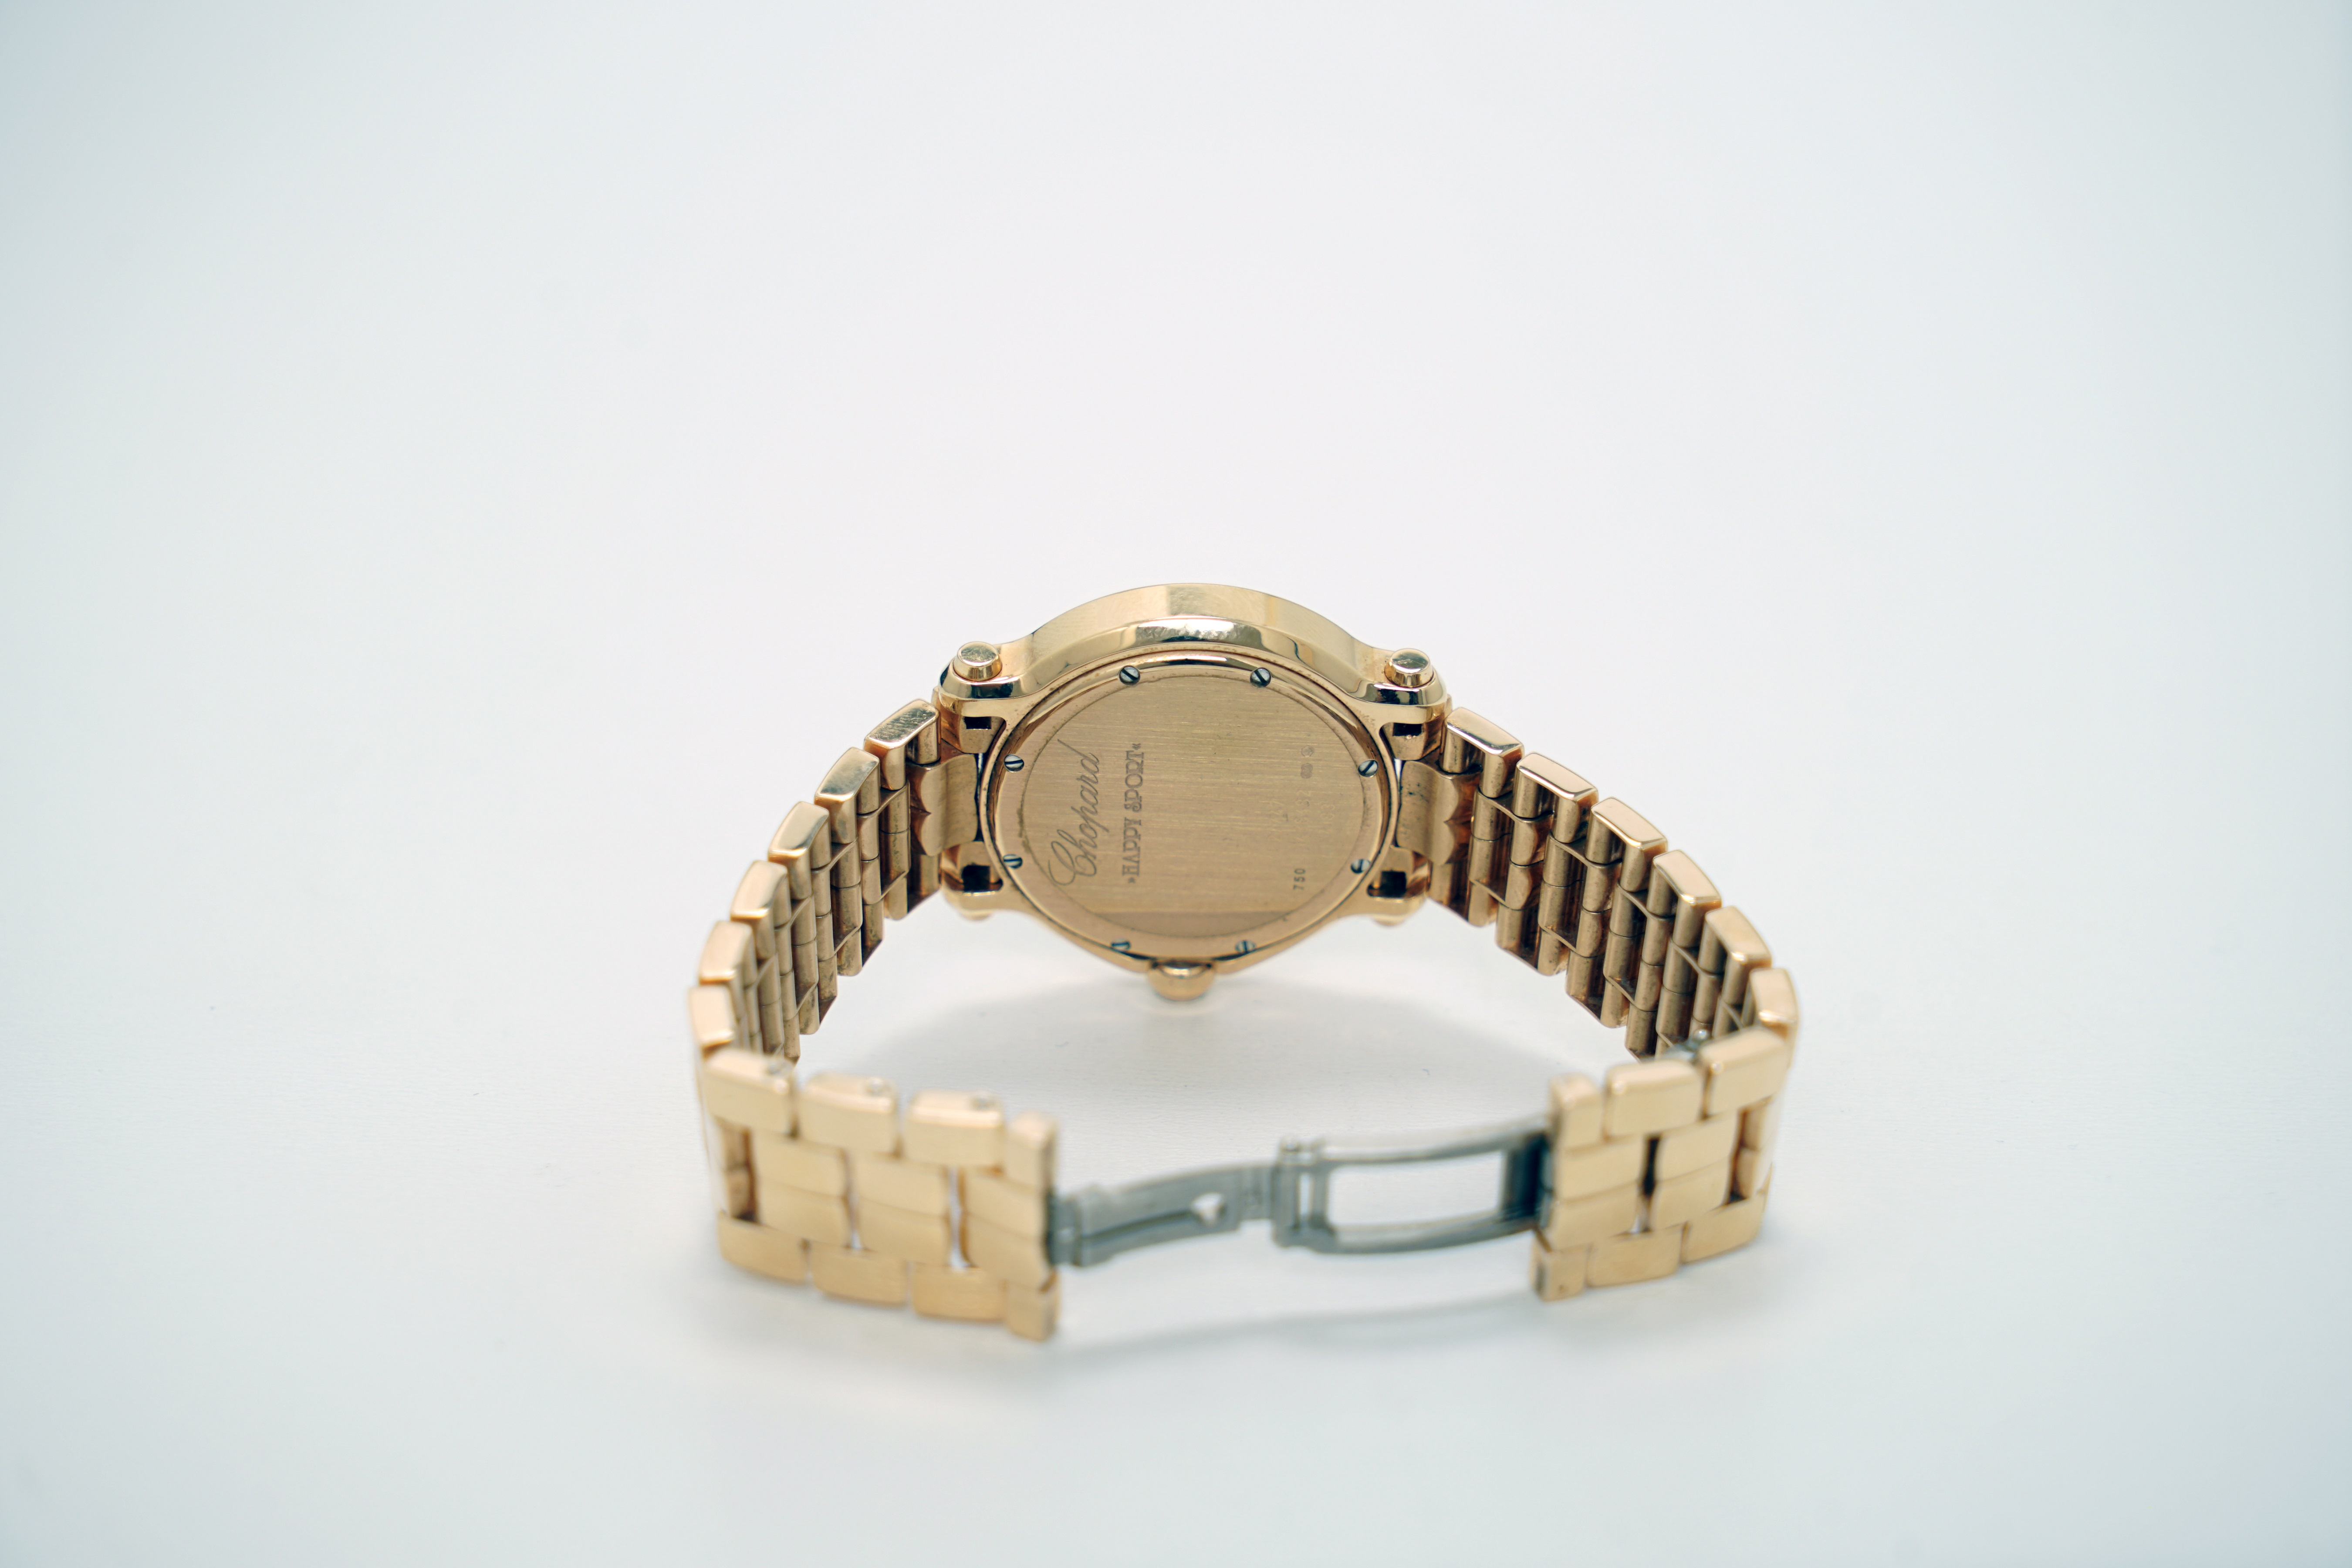 A Lady's 18K Rotgold Chopard Happy Sport Wristwatch with 1 Sapphire and 7 Diamonds - Image 10 of 10